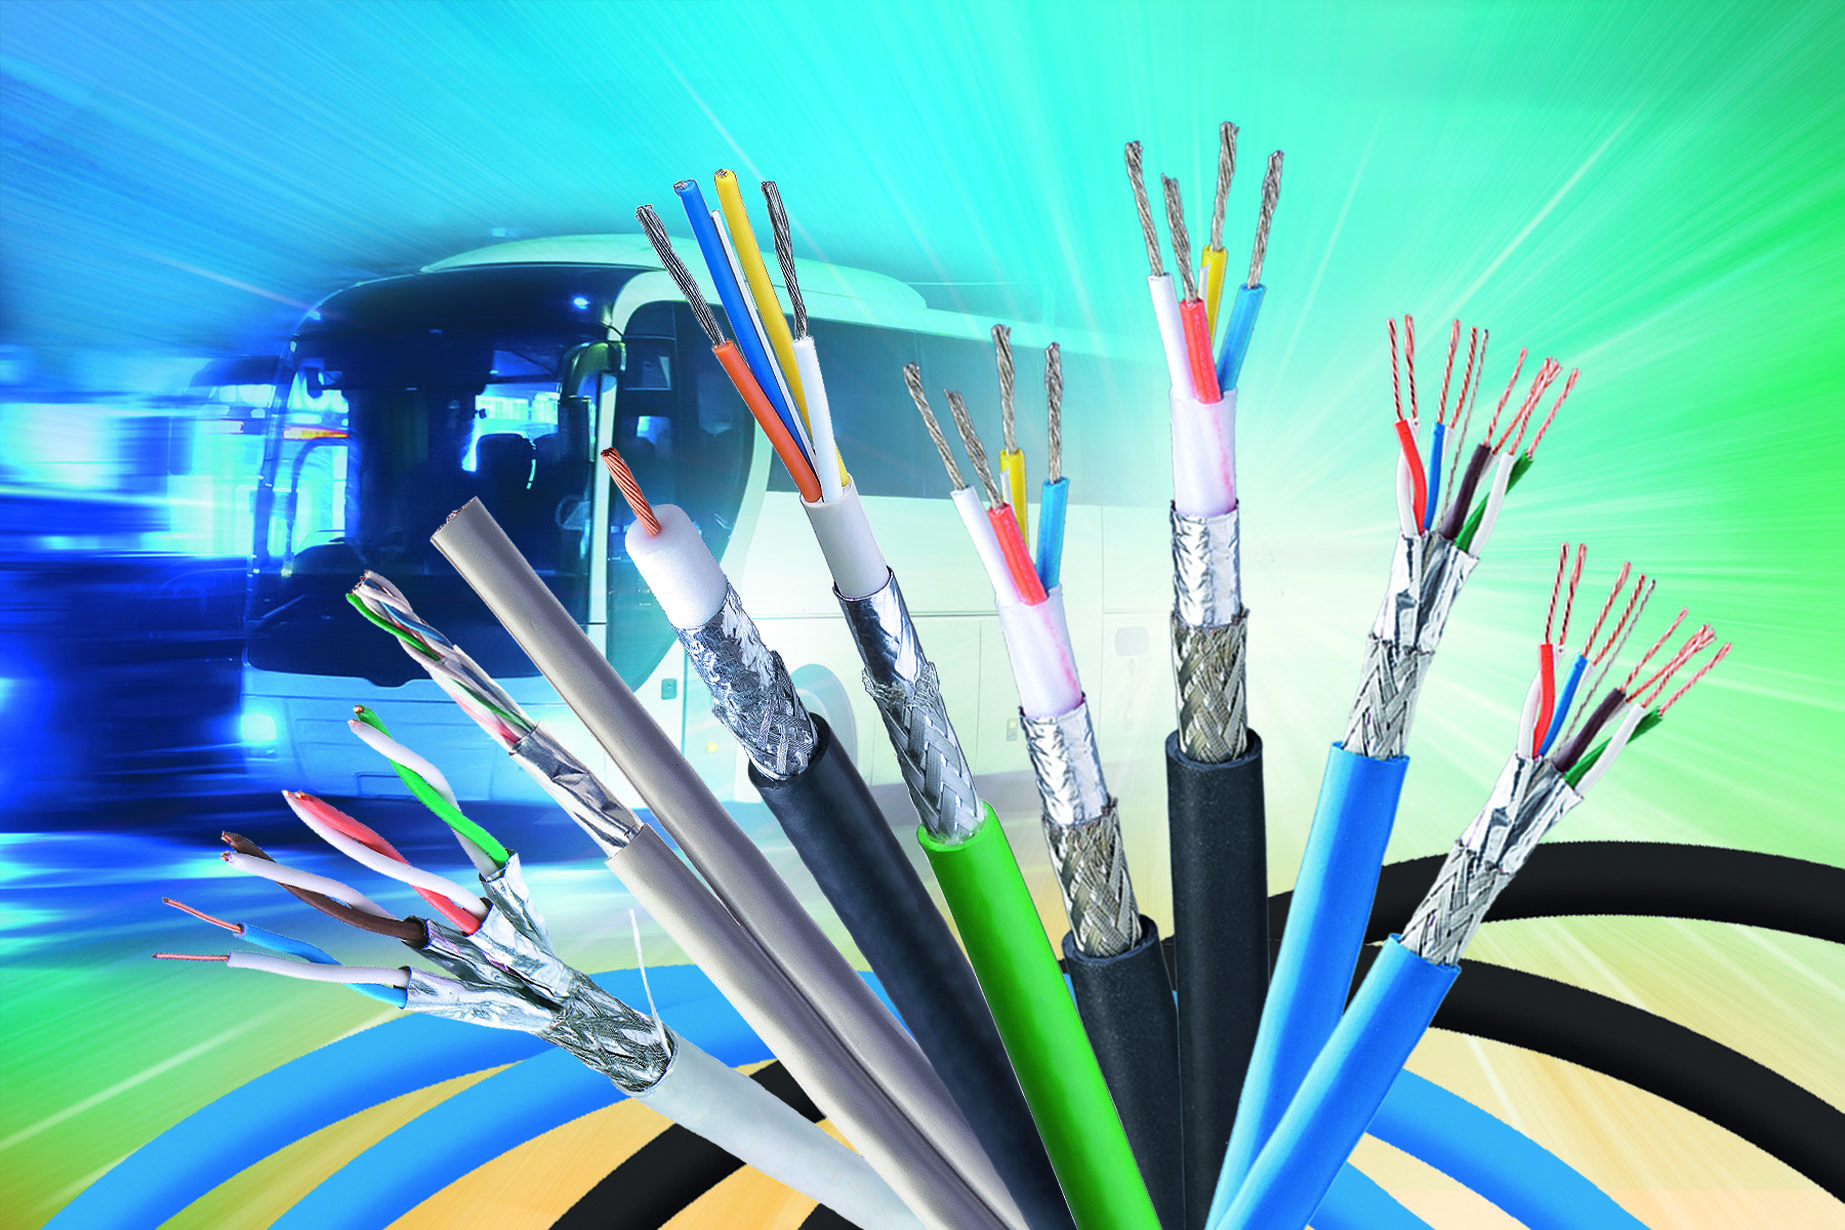 cable industry research paper Generally speaking, global conditions for the fmcg industry remained positive in second-quarter 2018 with many markets experiencing notable increases in gdp growth, conditions were favorable for manufacturers and retailers.